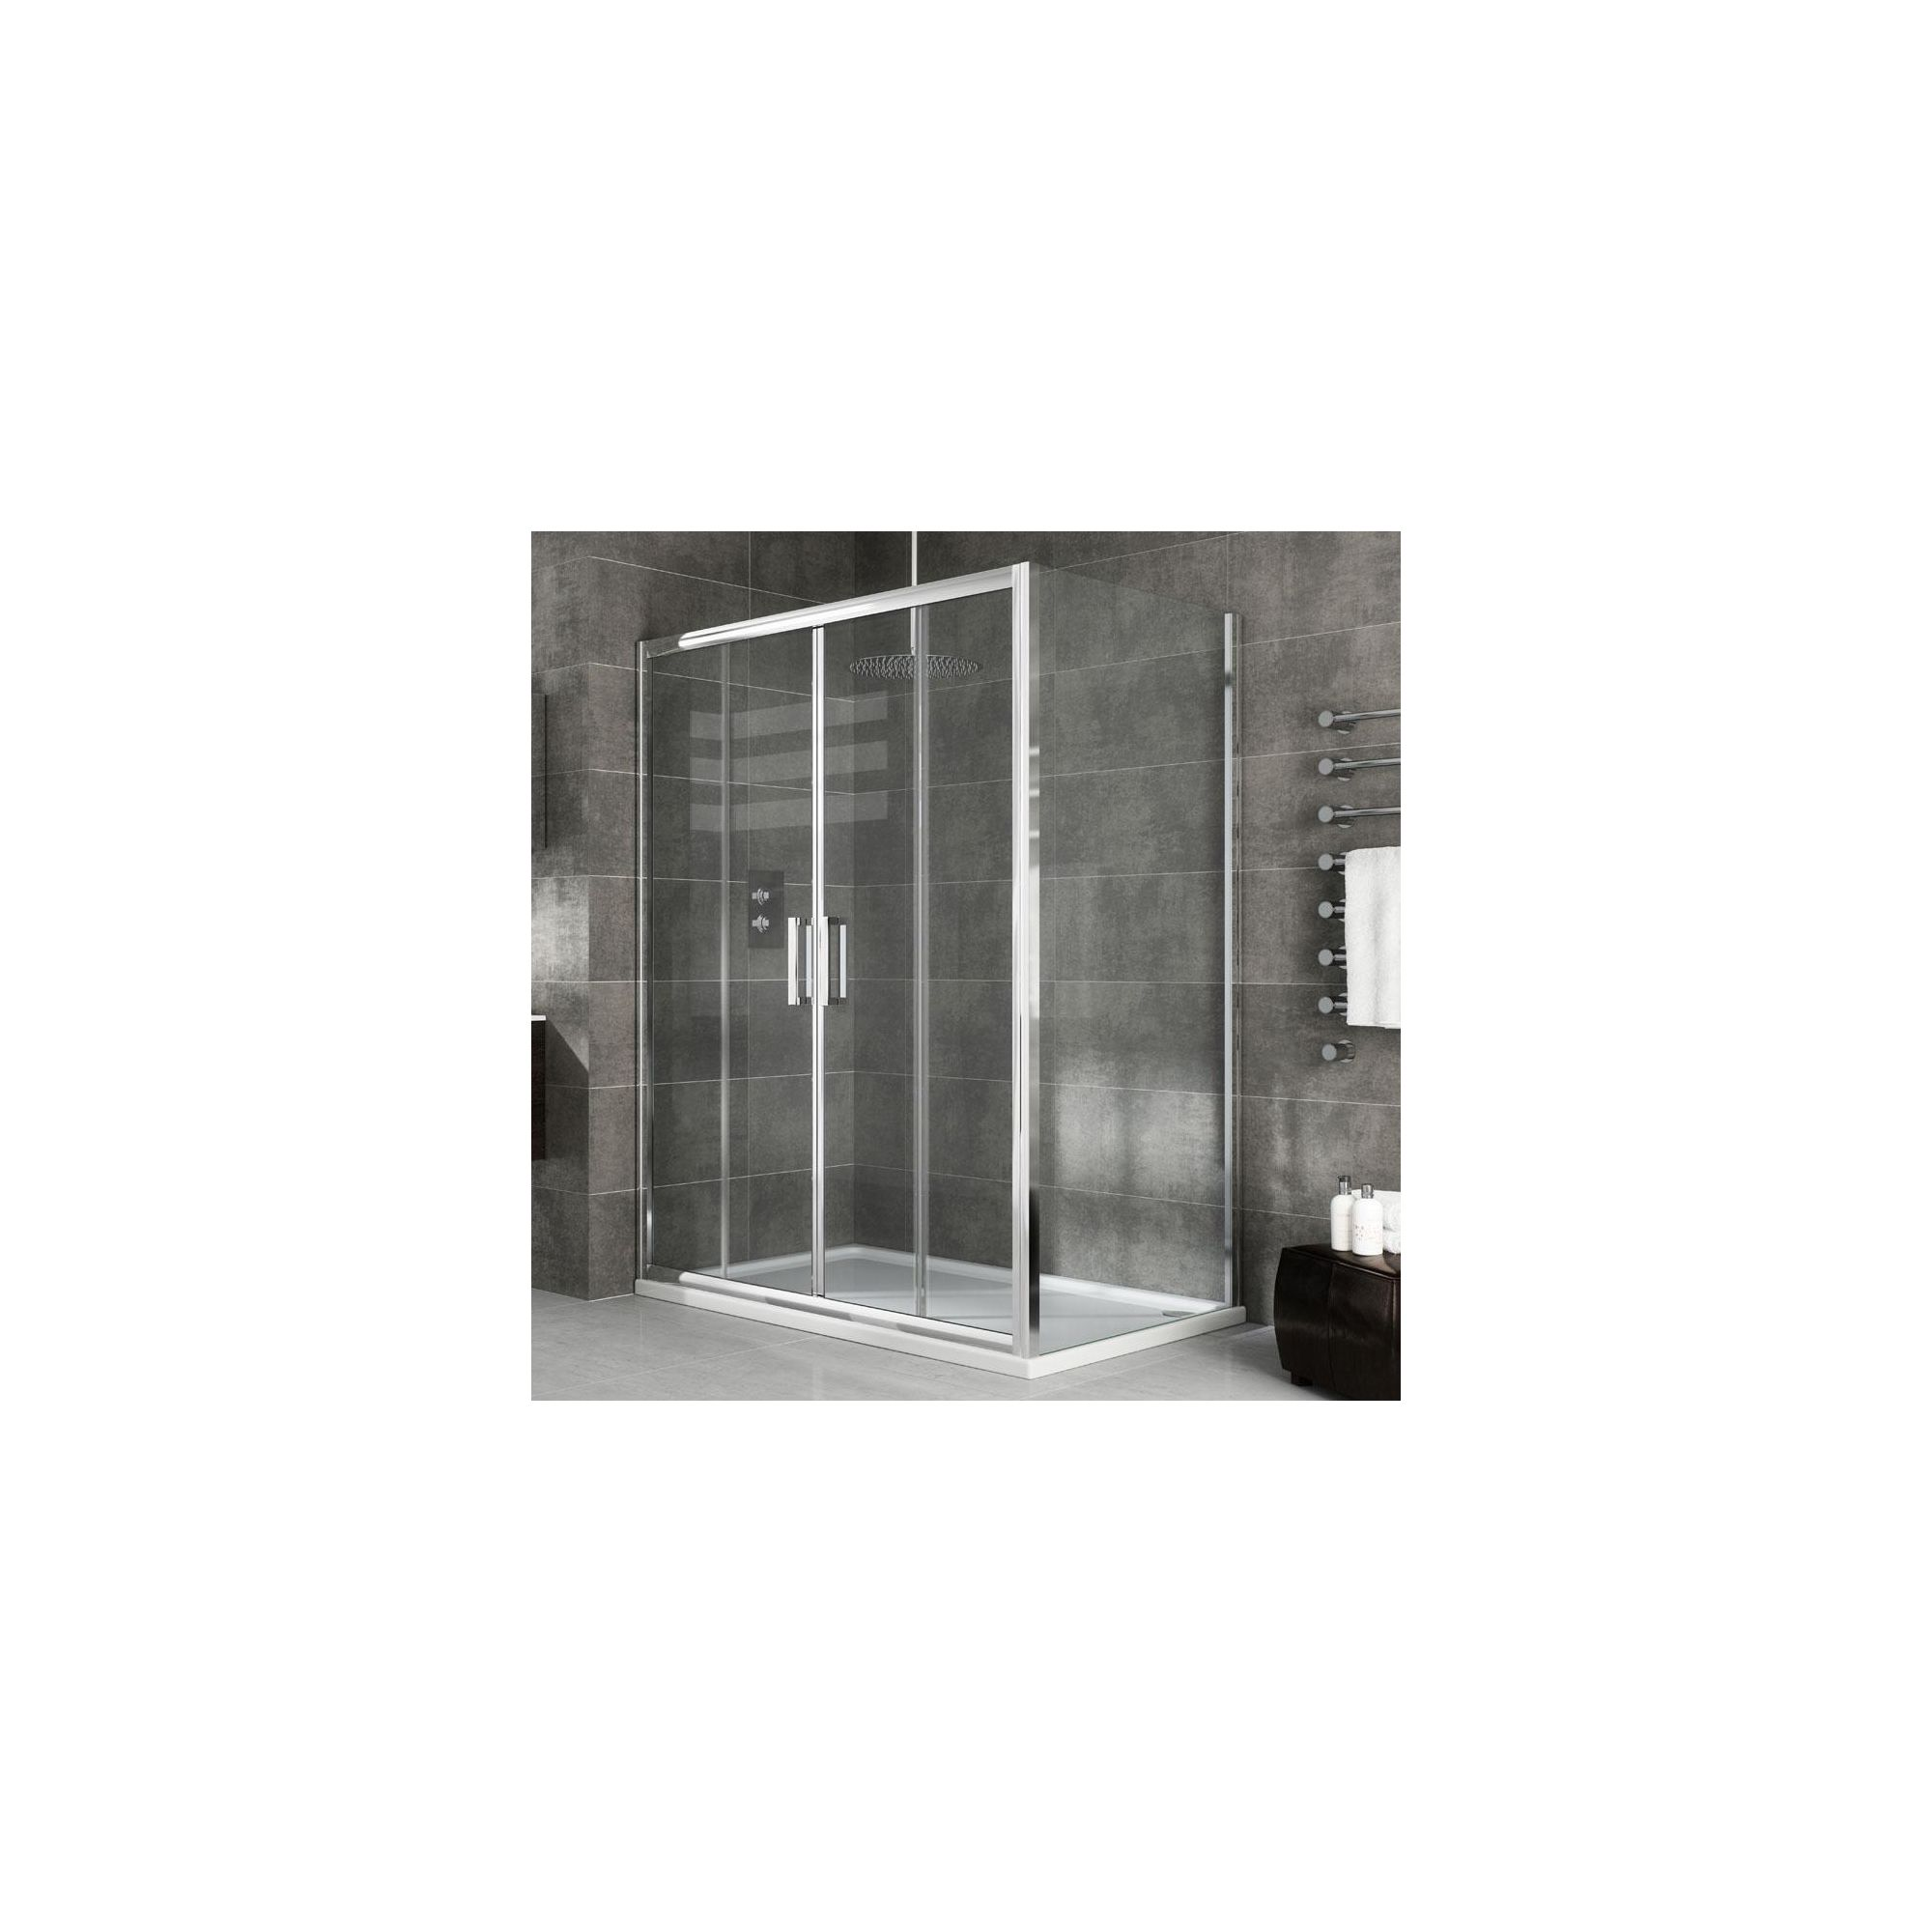 Elemis Eternity Two-Panel Jumbo Sliding Door Shower Enclosure, 1100mm x 800mm, 8mm Glass, Low Profile Tray at Tesco Direct